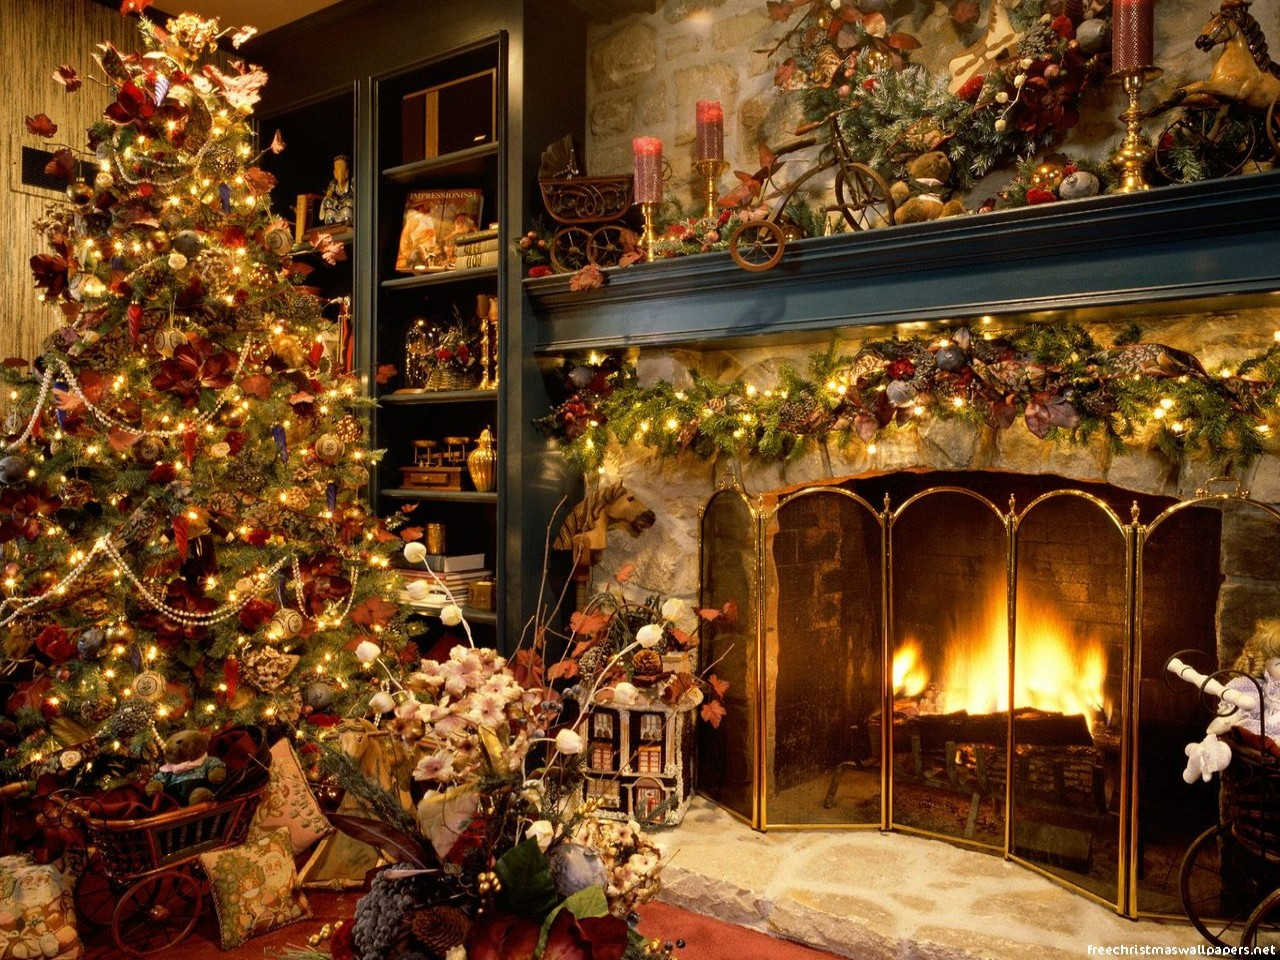 Christmas Tree And Fireplace 1280x960 Wallpaper Free